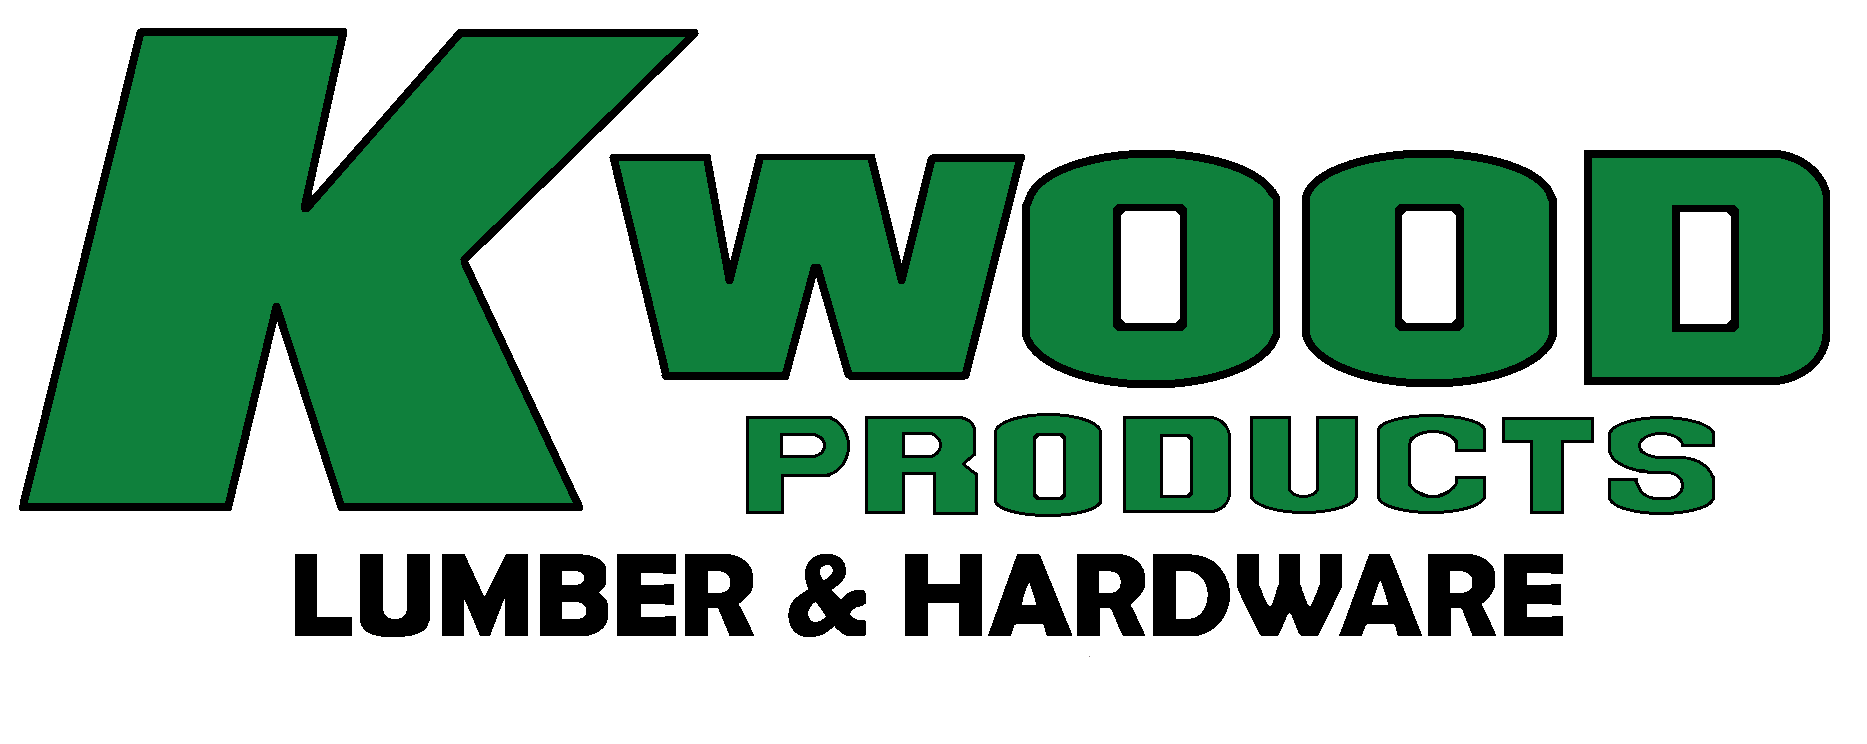 K-Wood Products Lumber, Hardware, & Building Materials